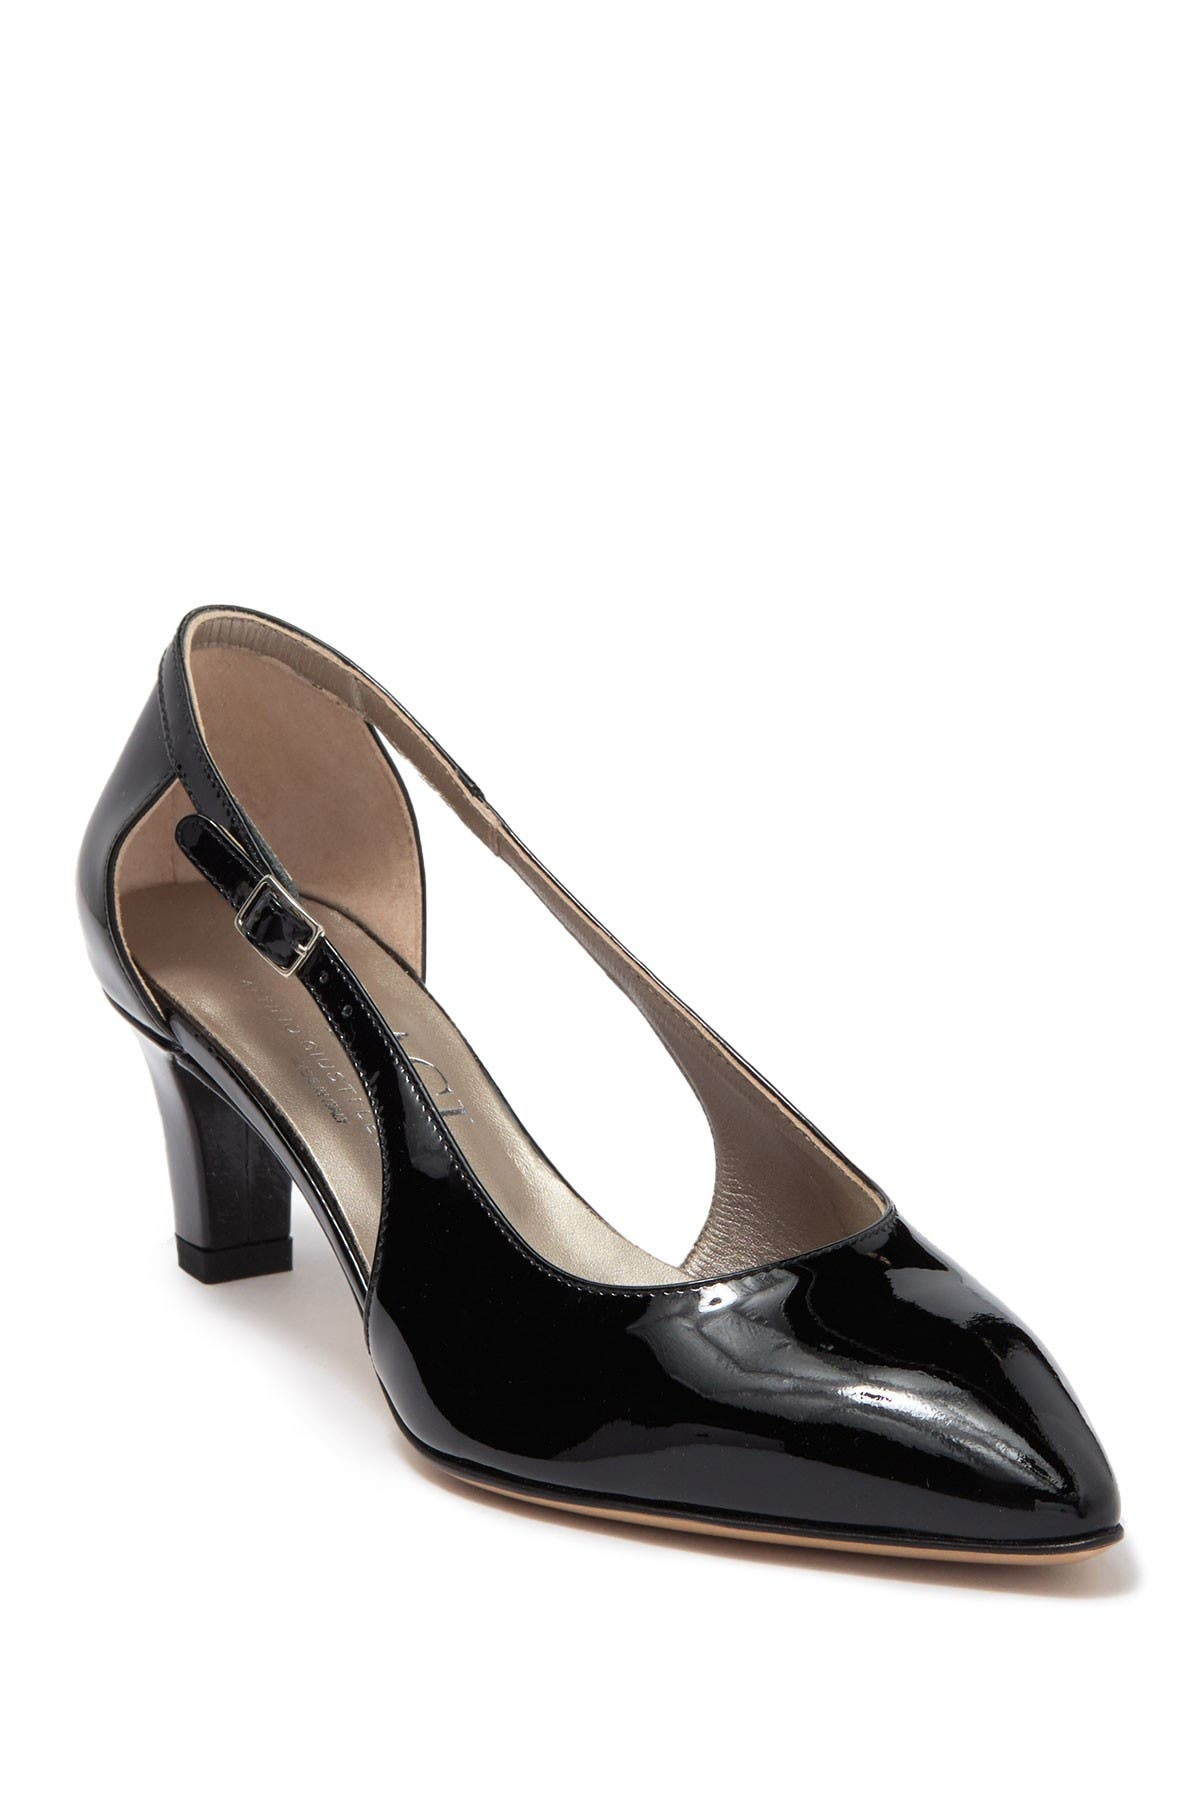 Image of AGL d'Orsay Black Patent Pump